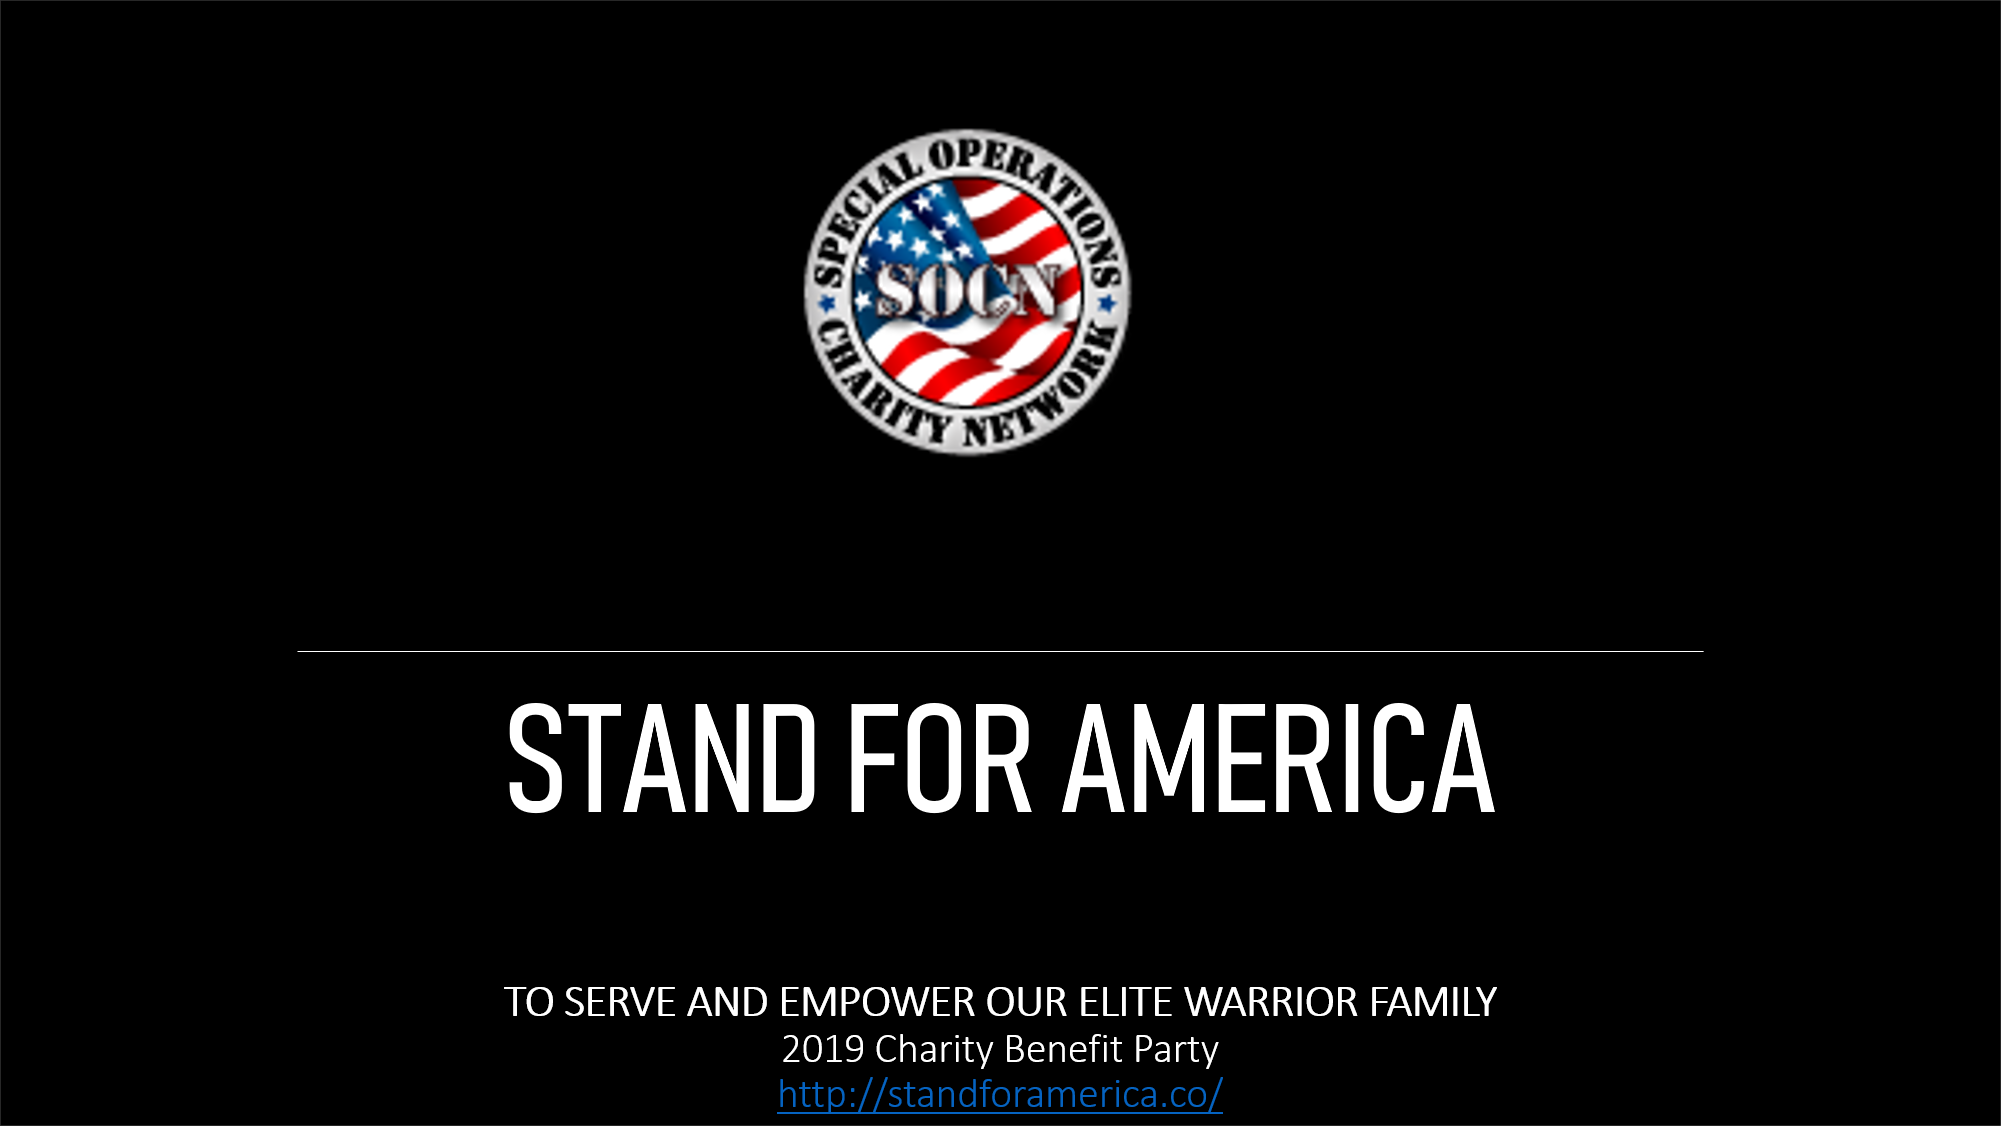 Stand for America Image .png